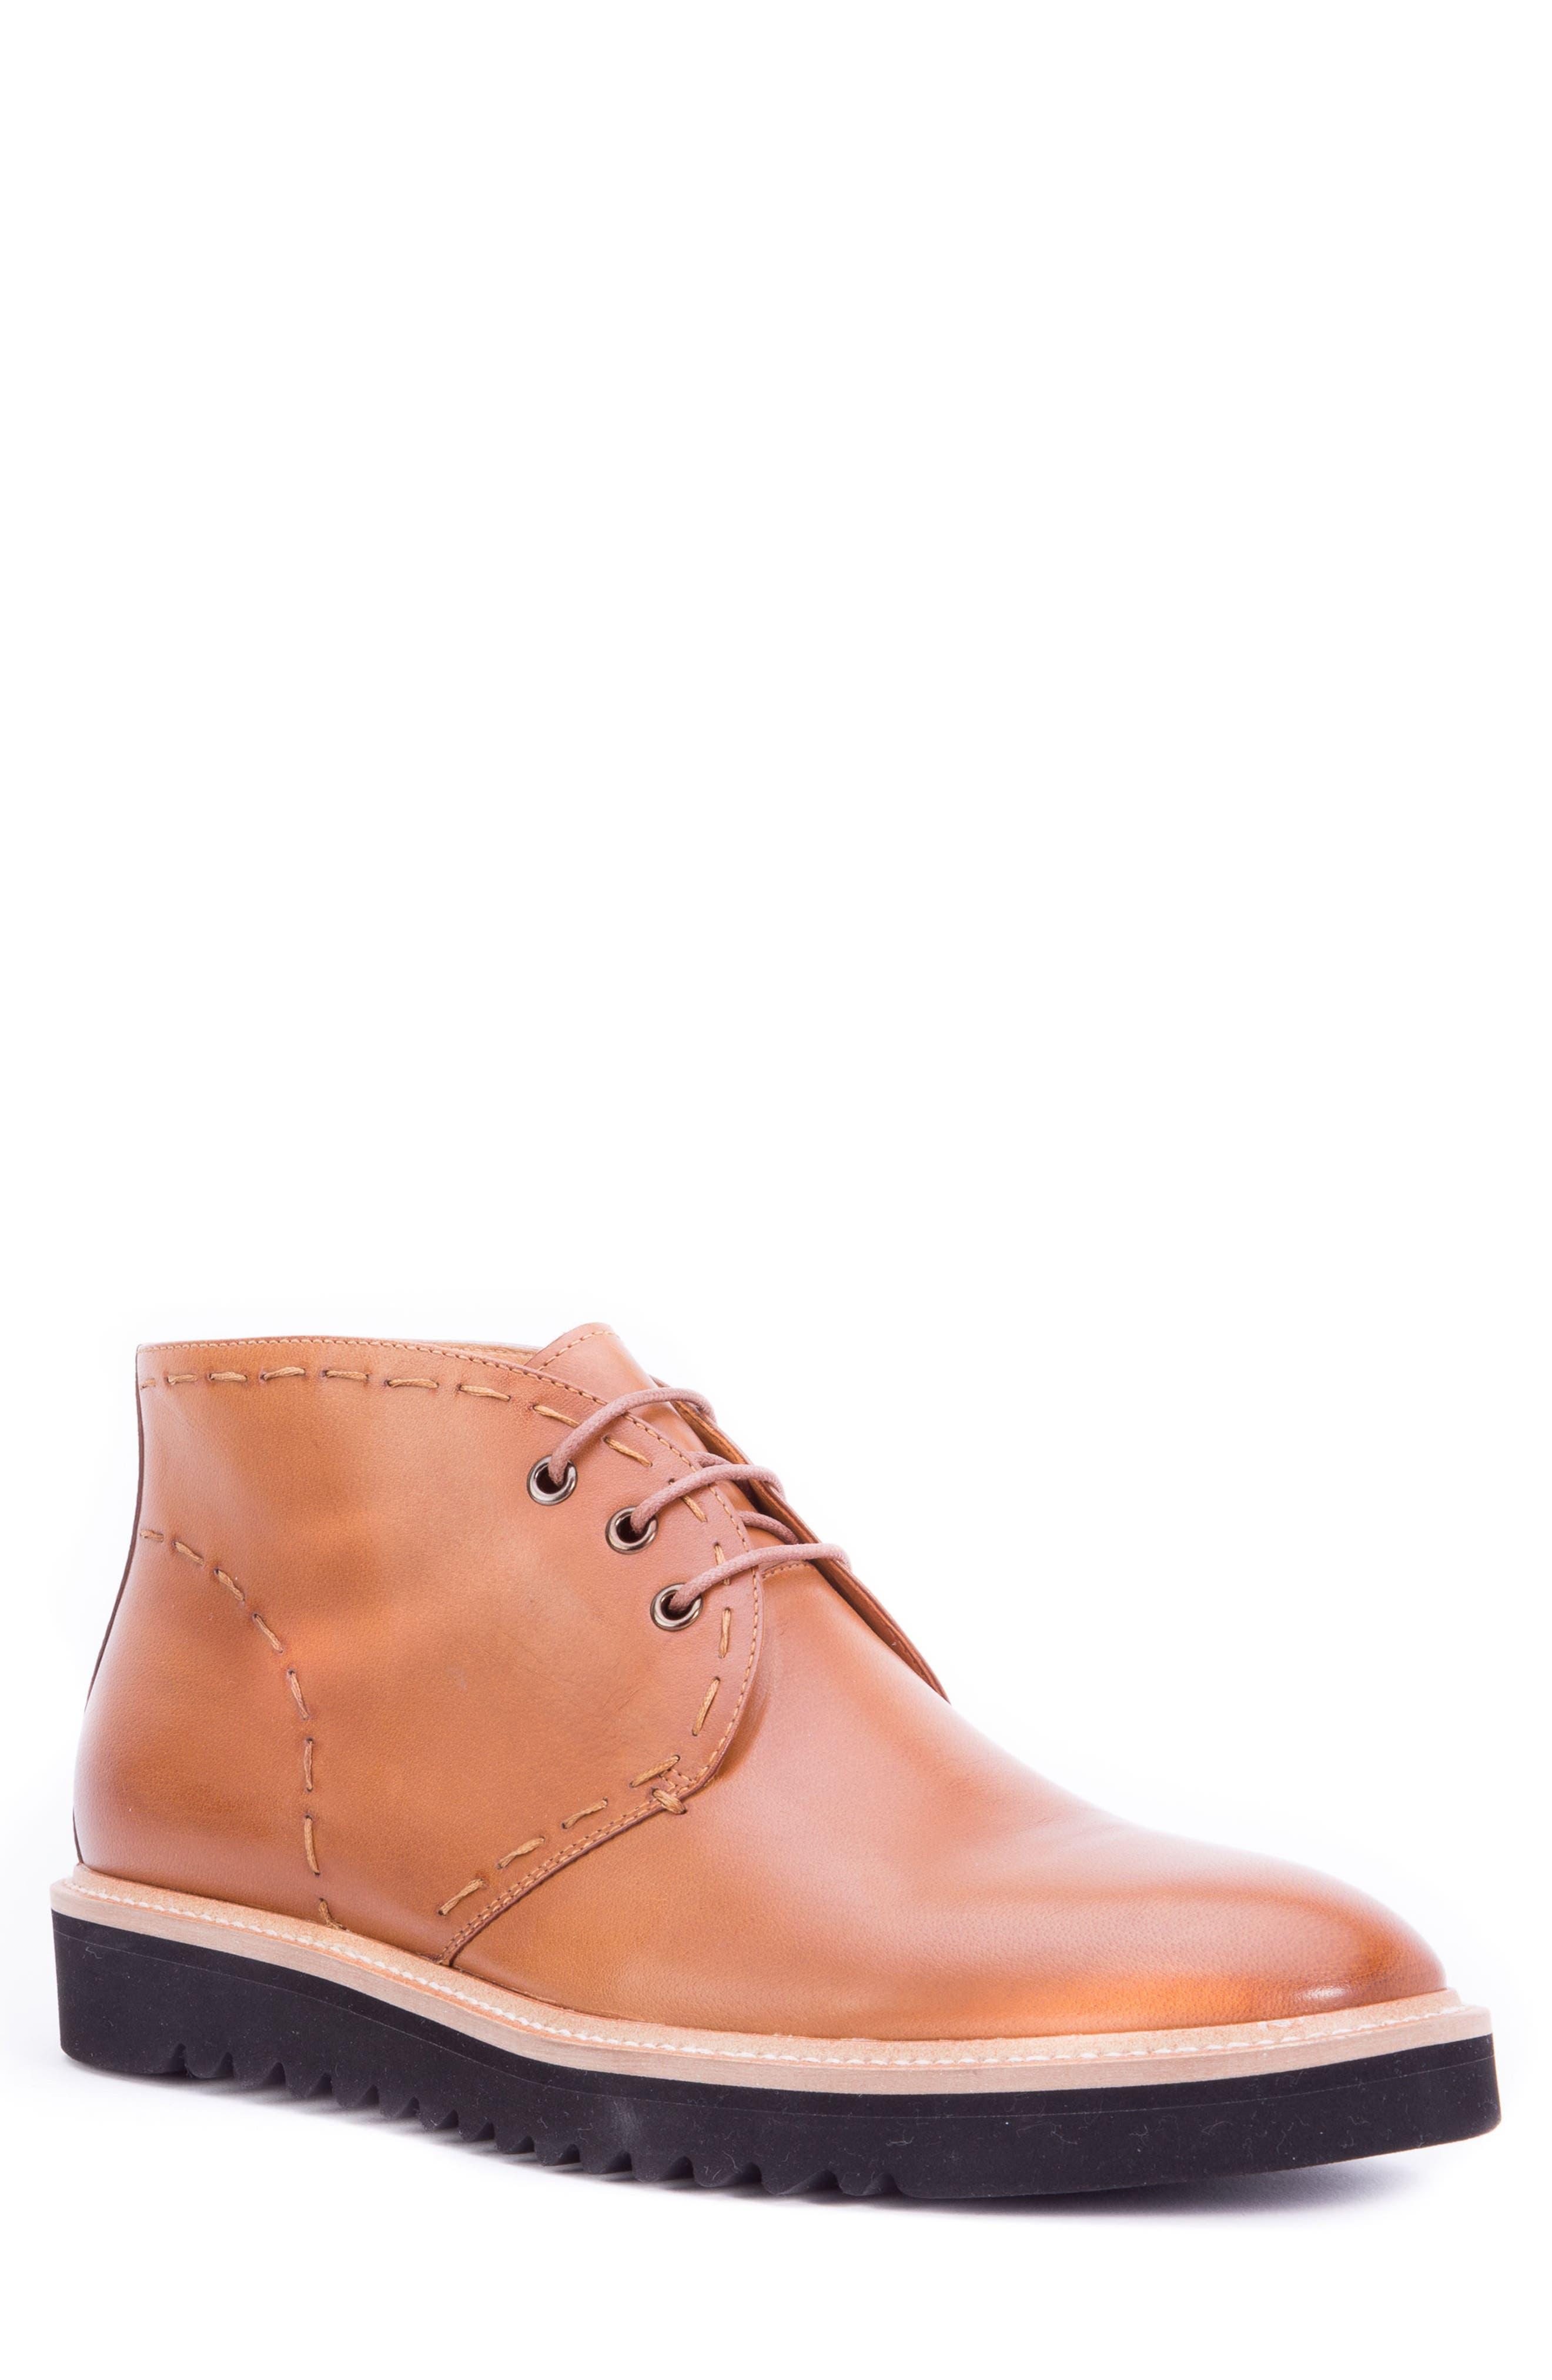 Lombardo Chukka Boot,                         Main,                         color, COGNAC LEATHER